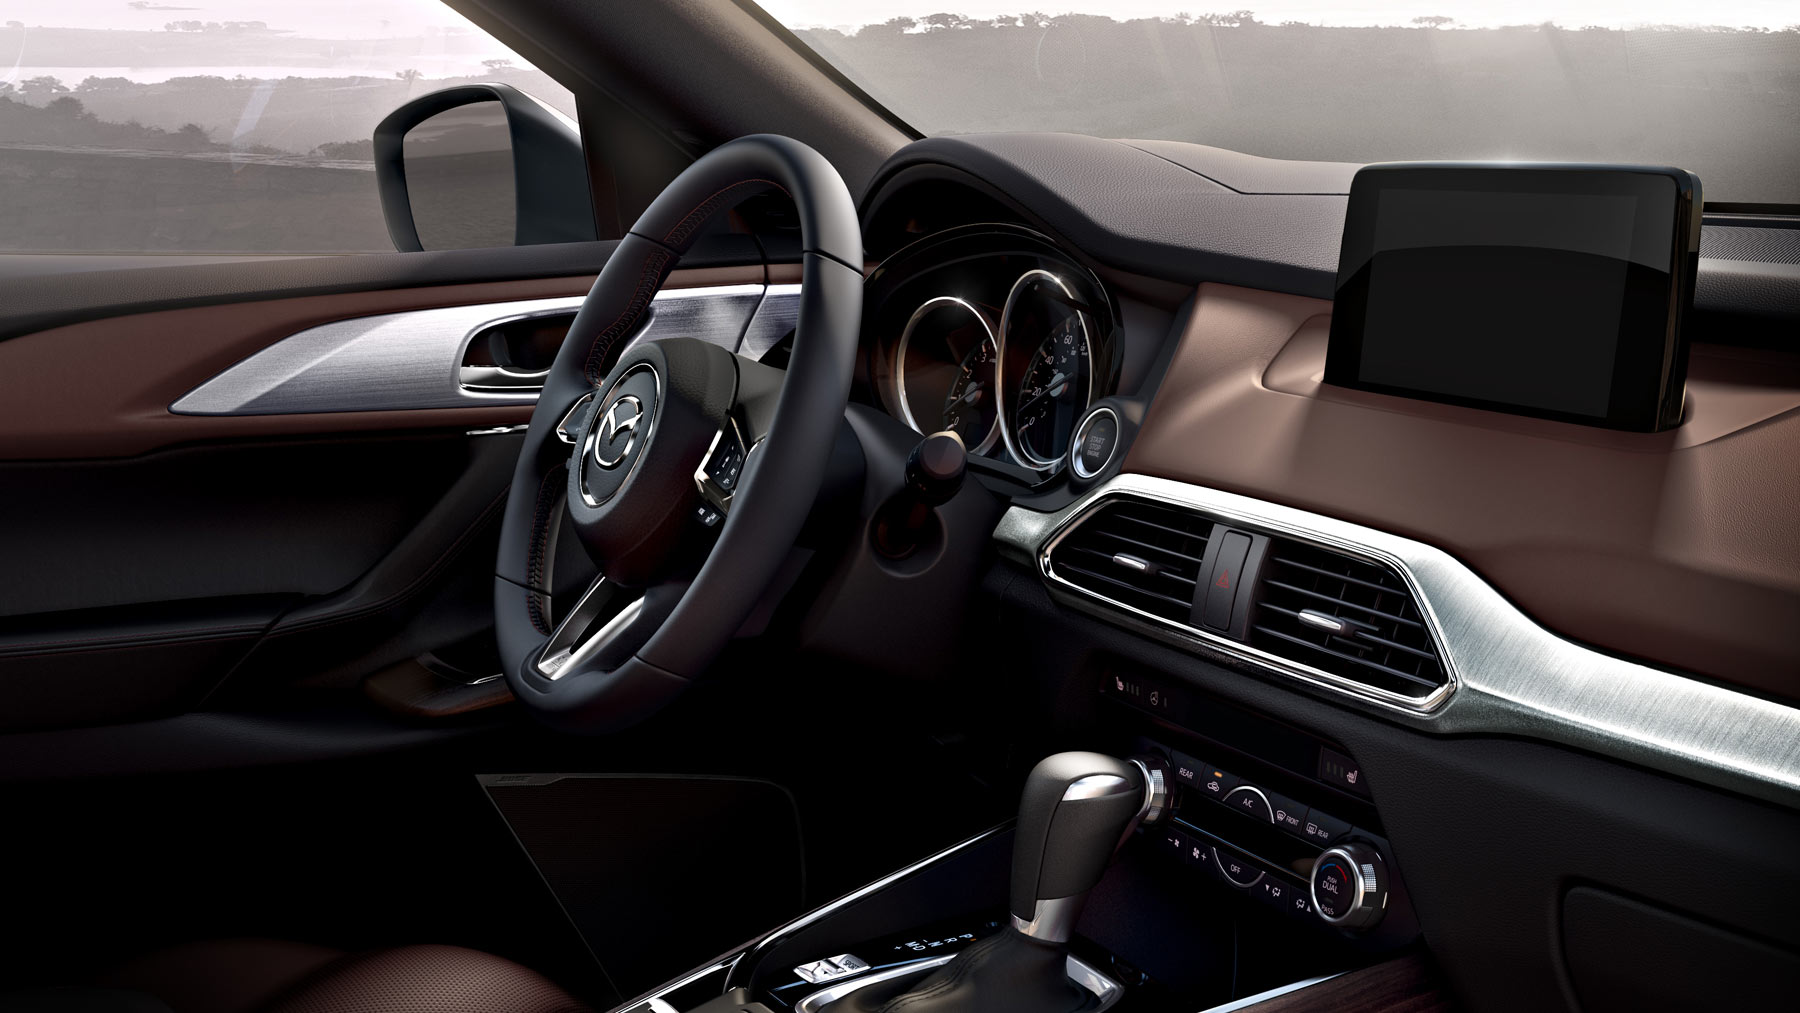 2018 Mazda CX-9 Front Interior Dashboard and Steering Wheel